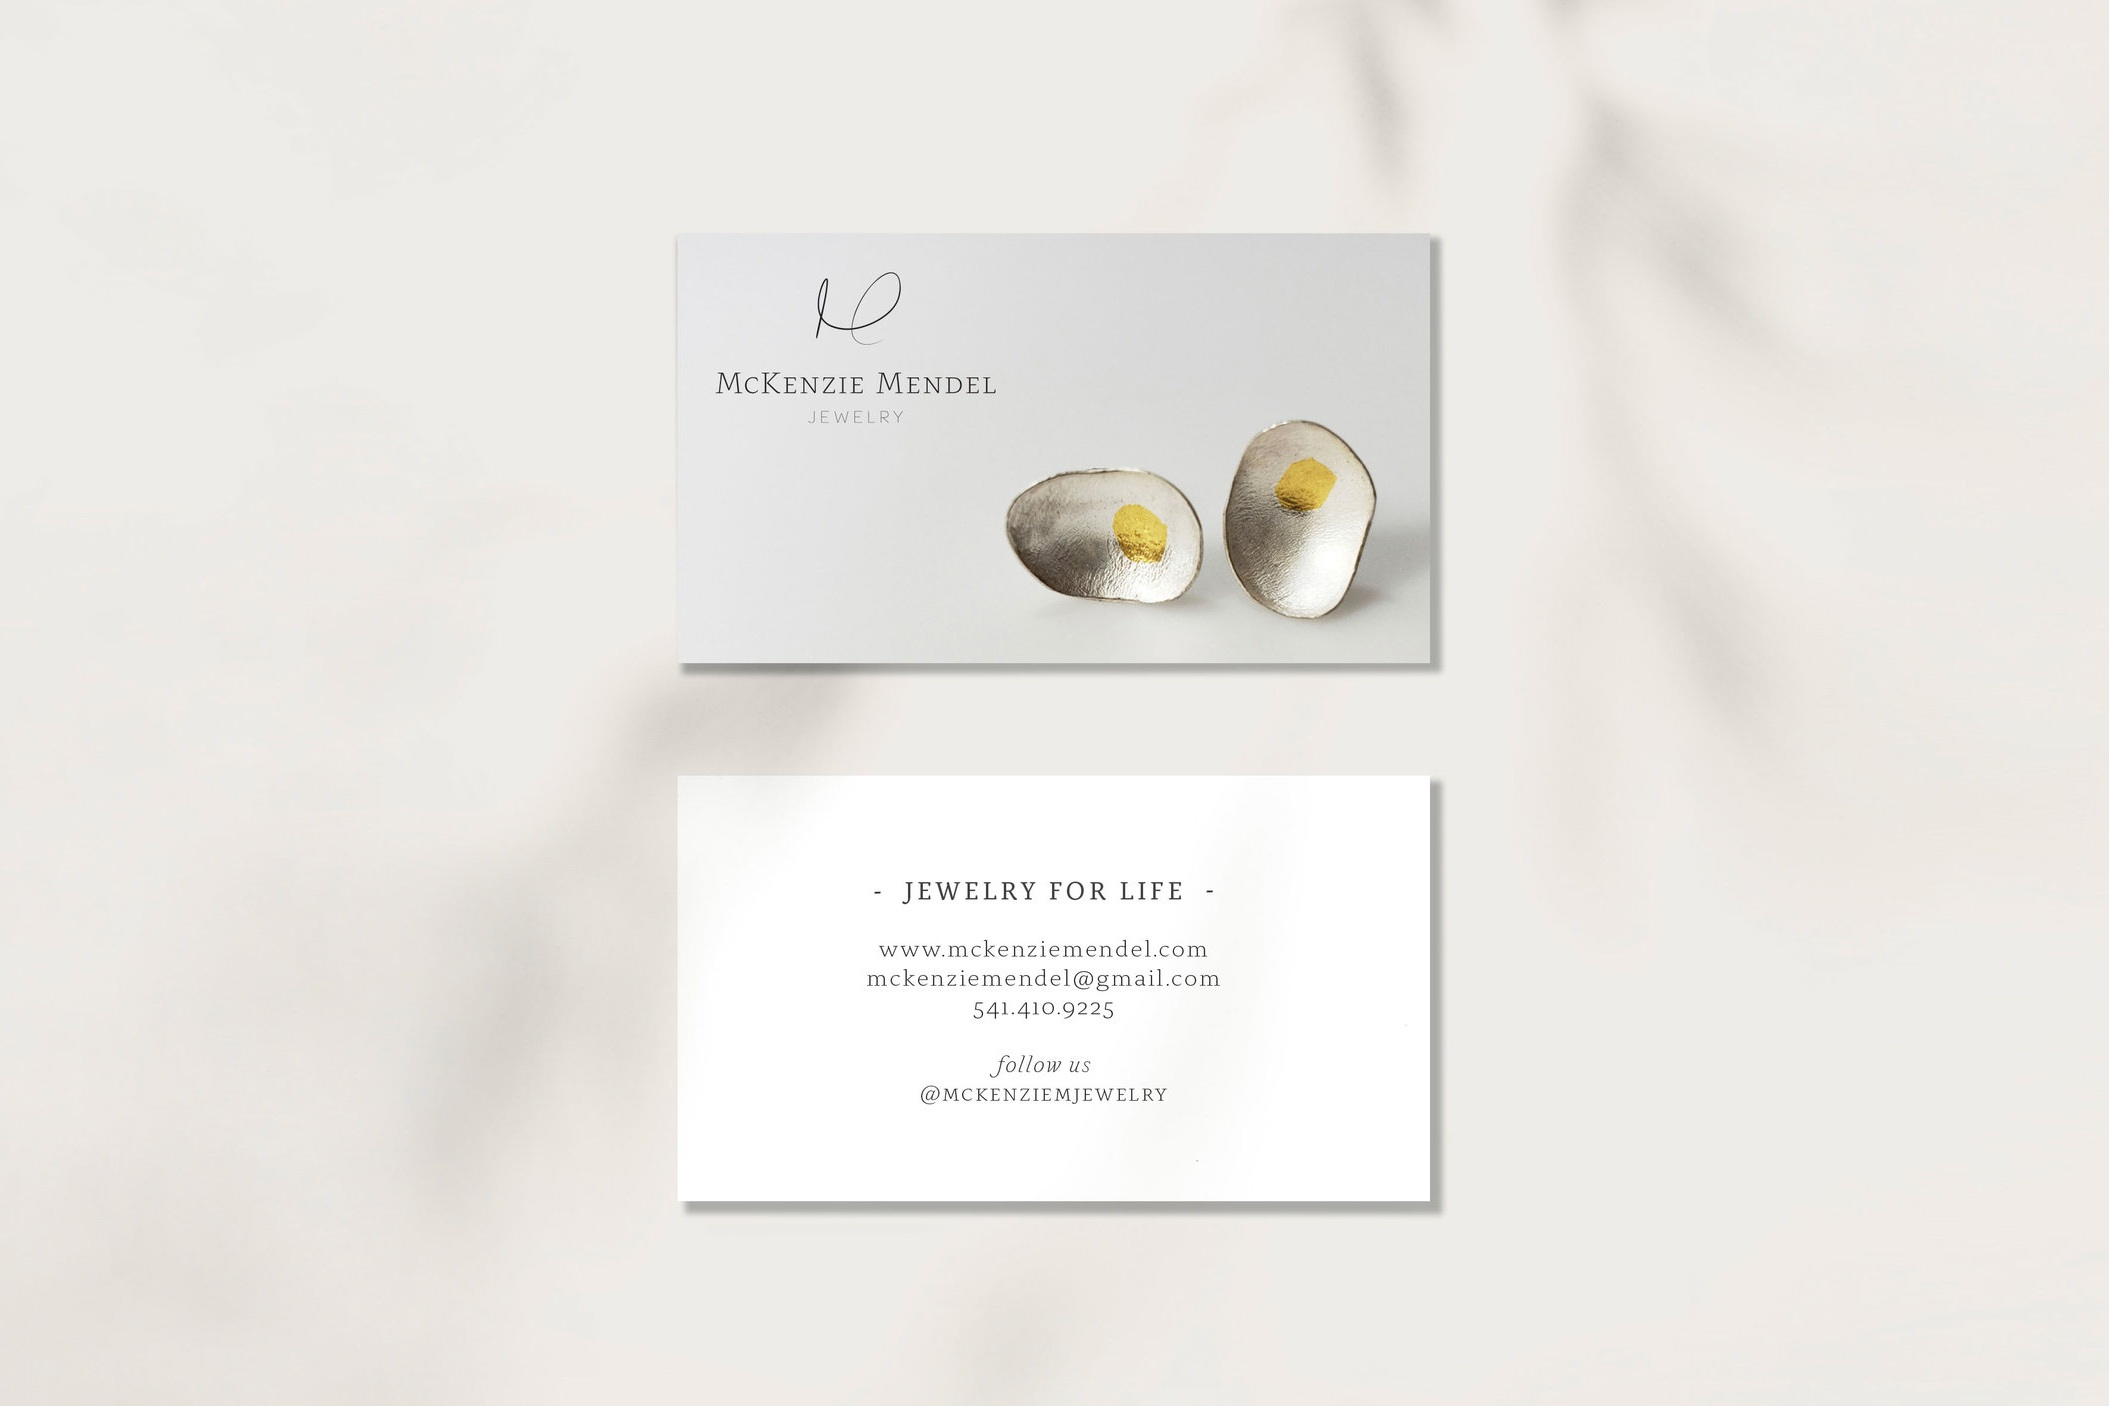 Jewelry-Designer-Business-Card-Graphic-Design-.jpg